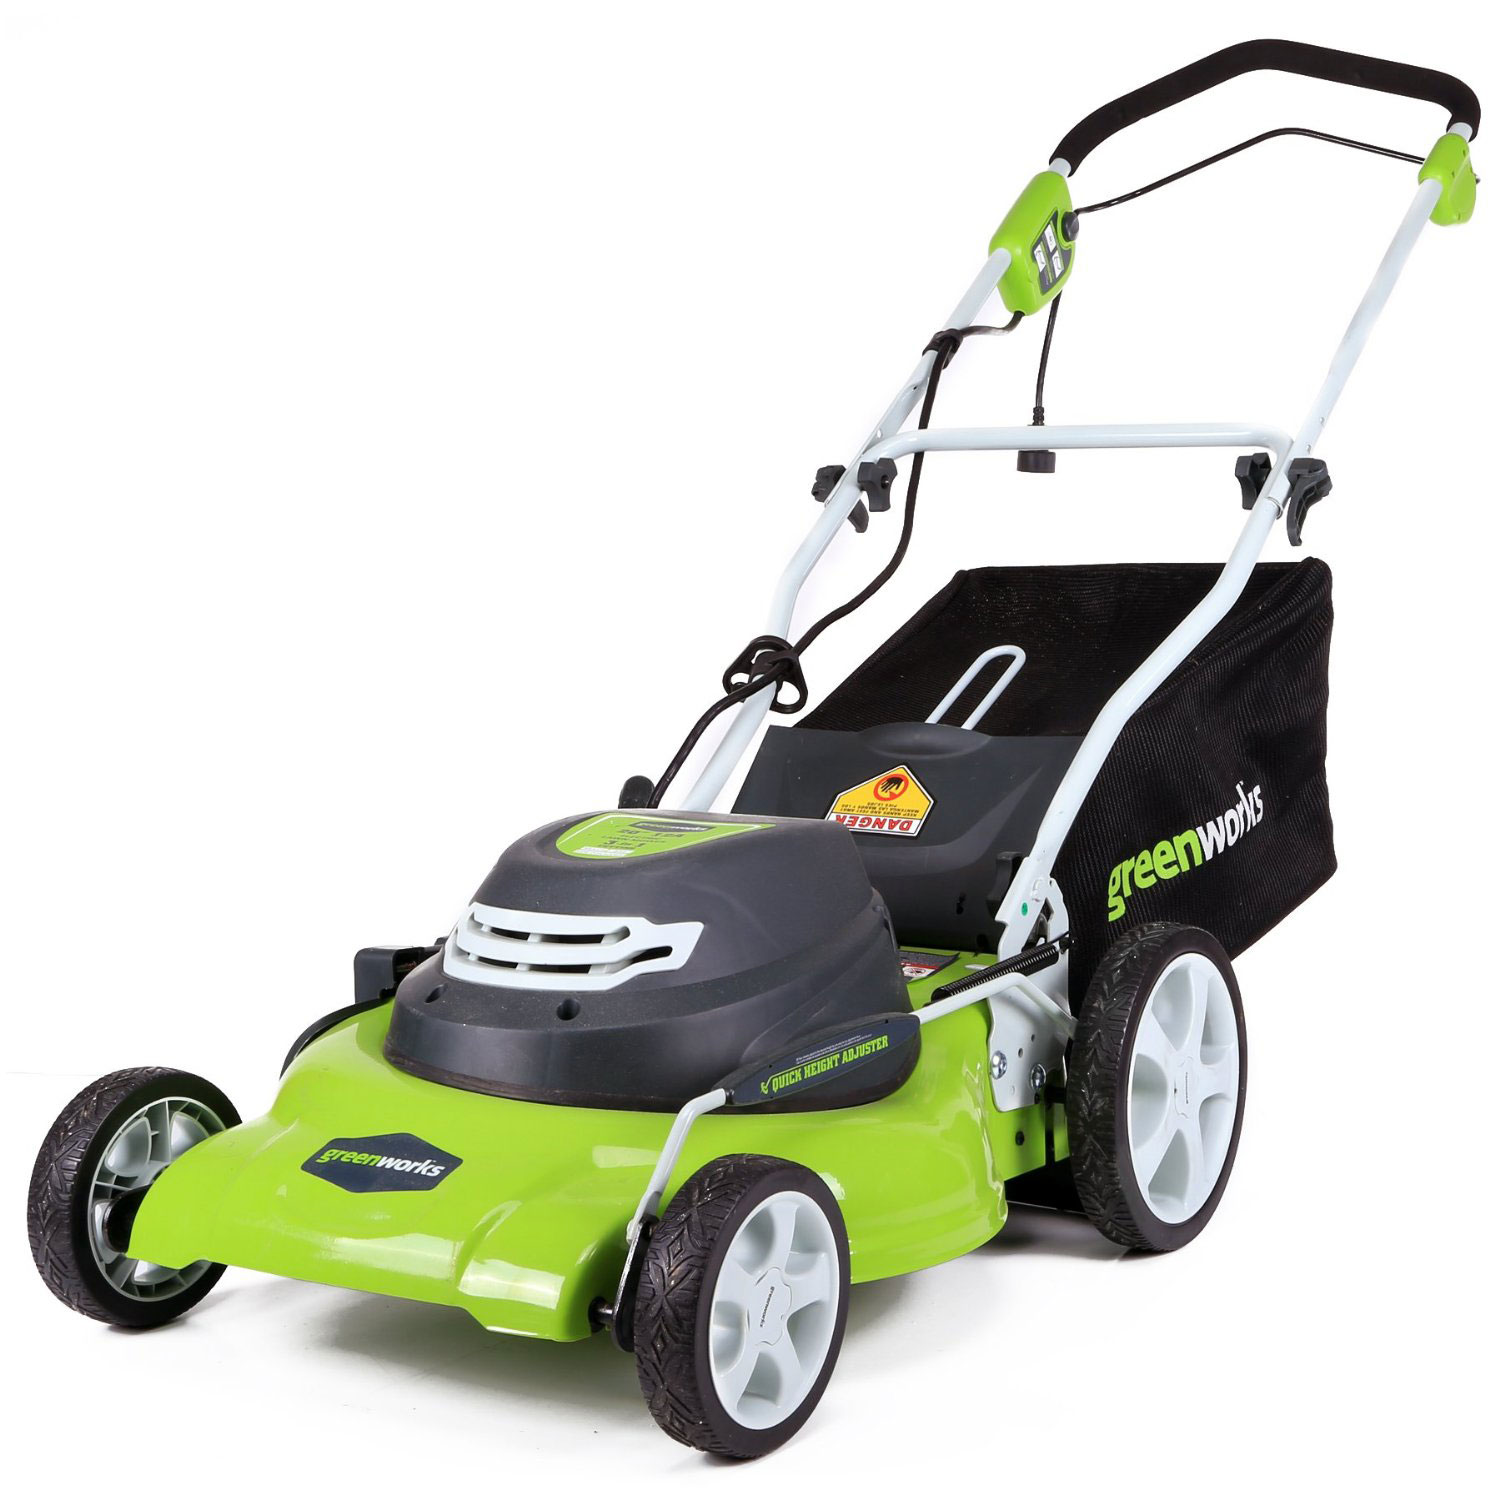 Electric Lawn Mower Reviews Get An Overview Your 10 Best Options